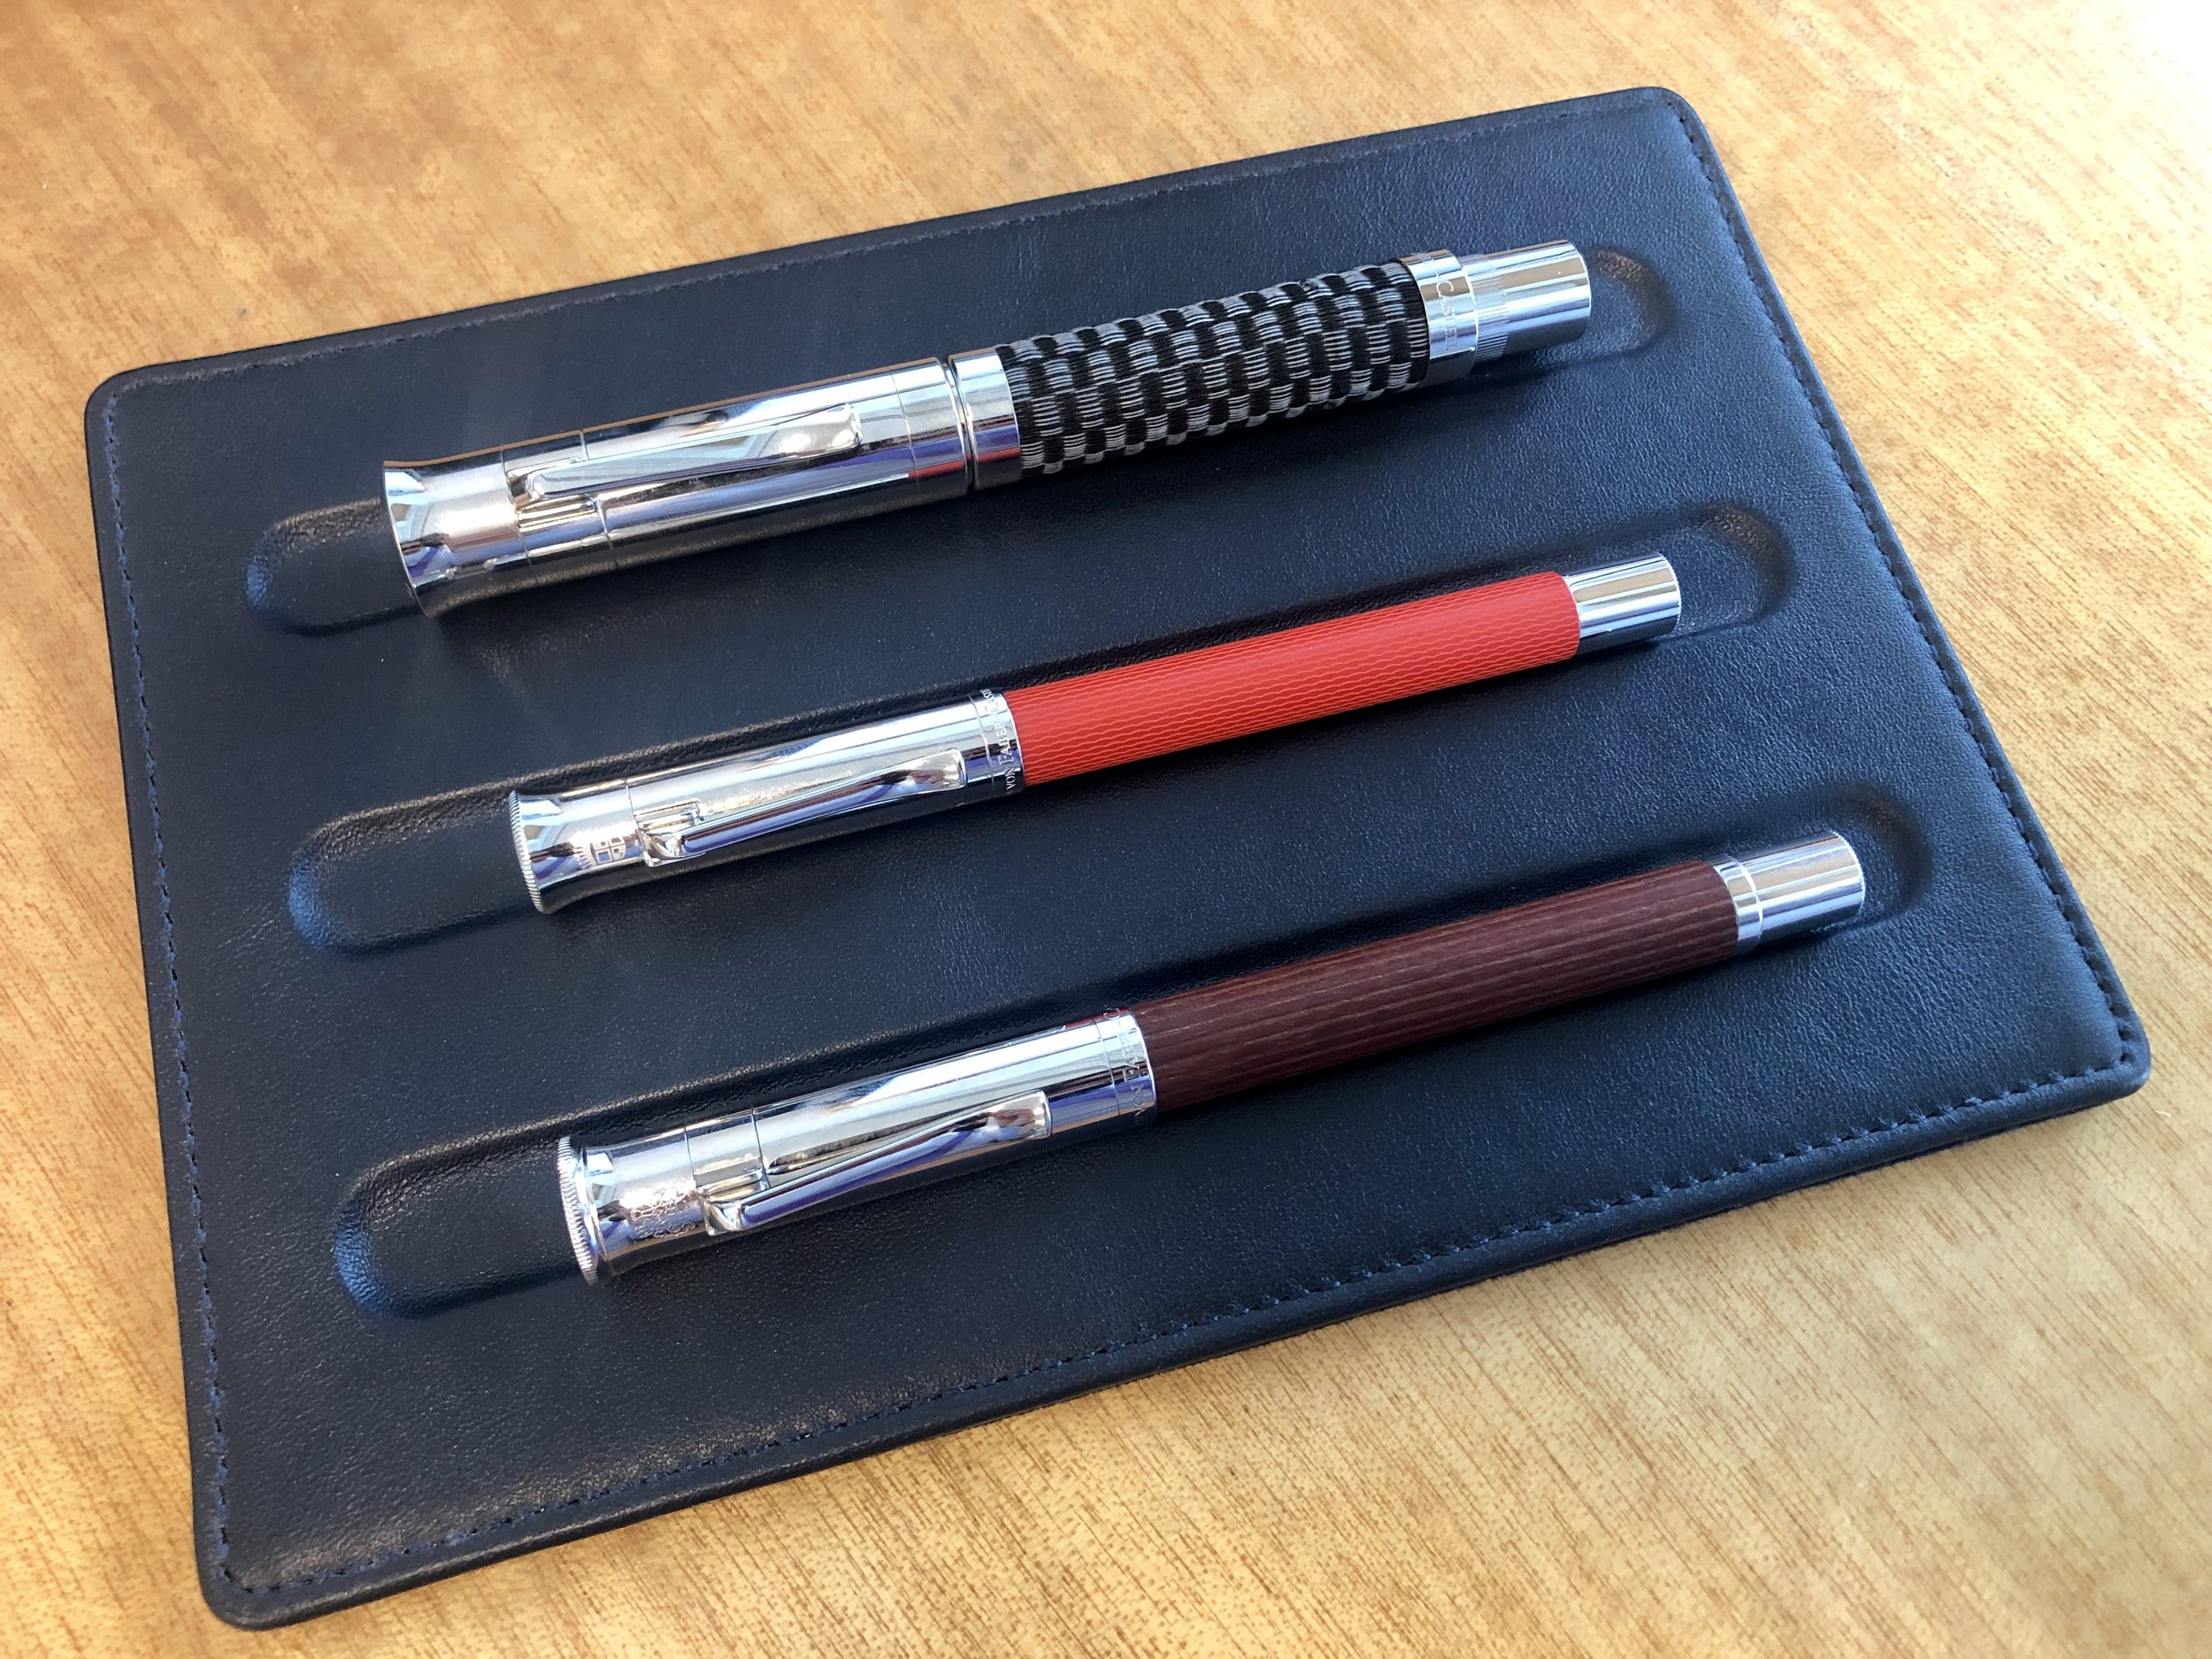 Graf von Faber-Castell Classic, Guilloche, and Pen of the Year (2009)